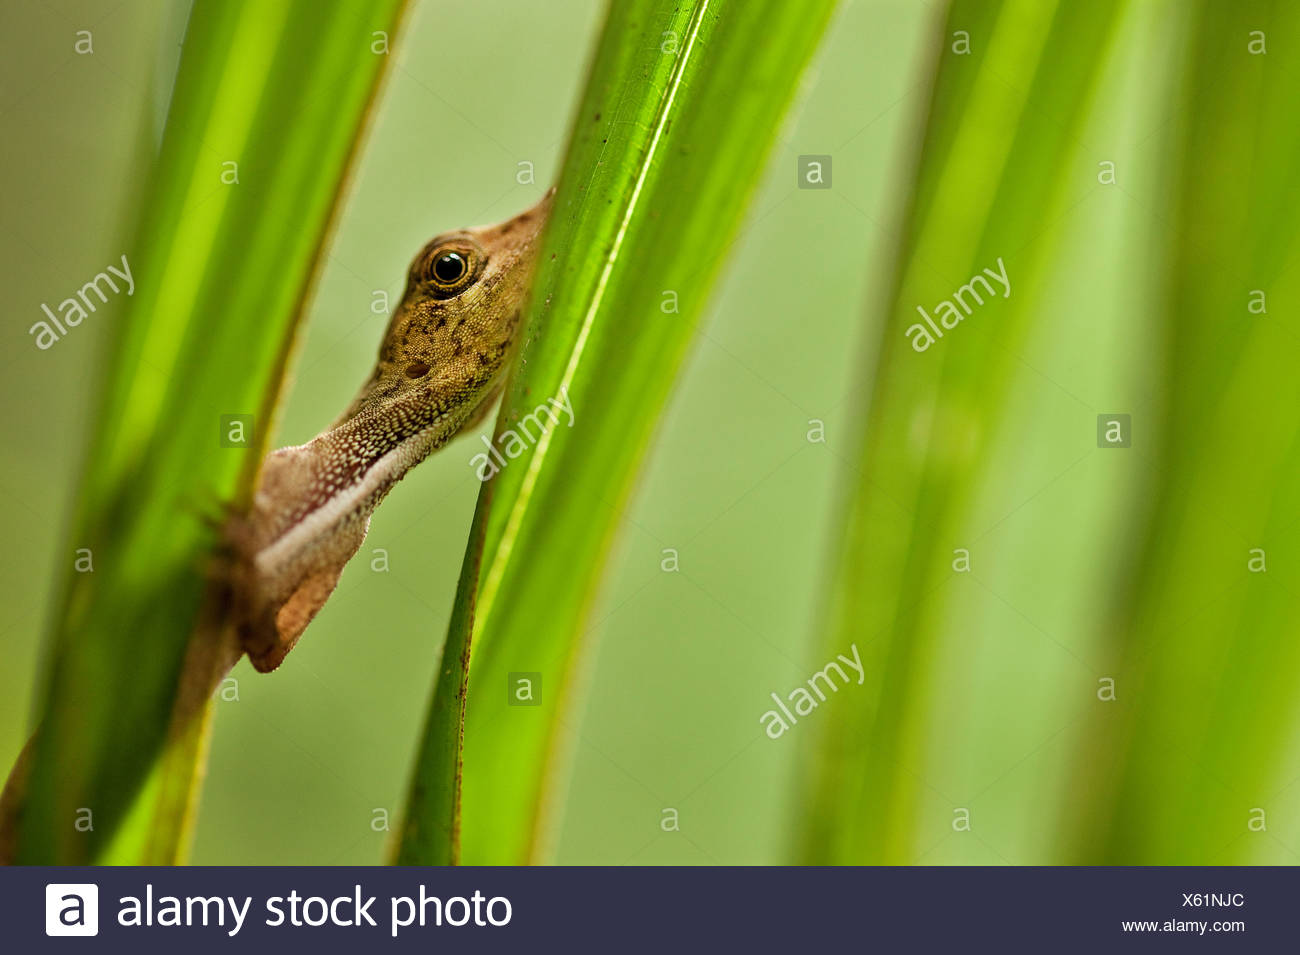 An anole watches the photographer warily from behind palm fronds in Tambopata National Preserve, Peru. (Anolis sagrei) - Stock Image